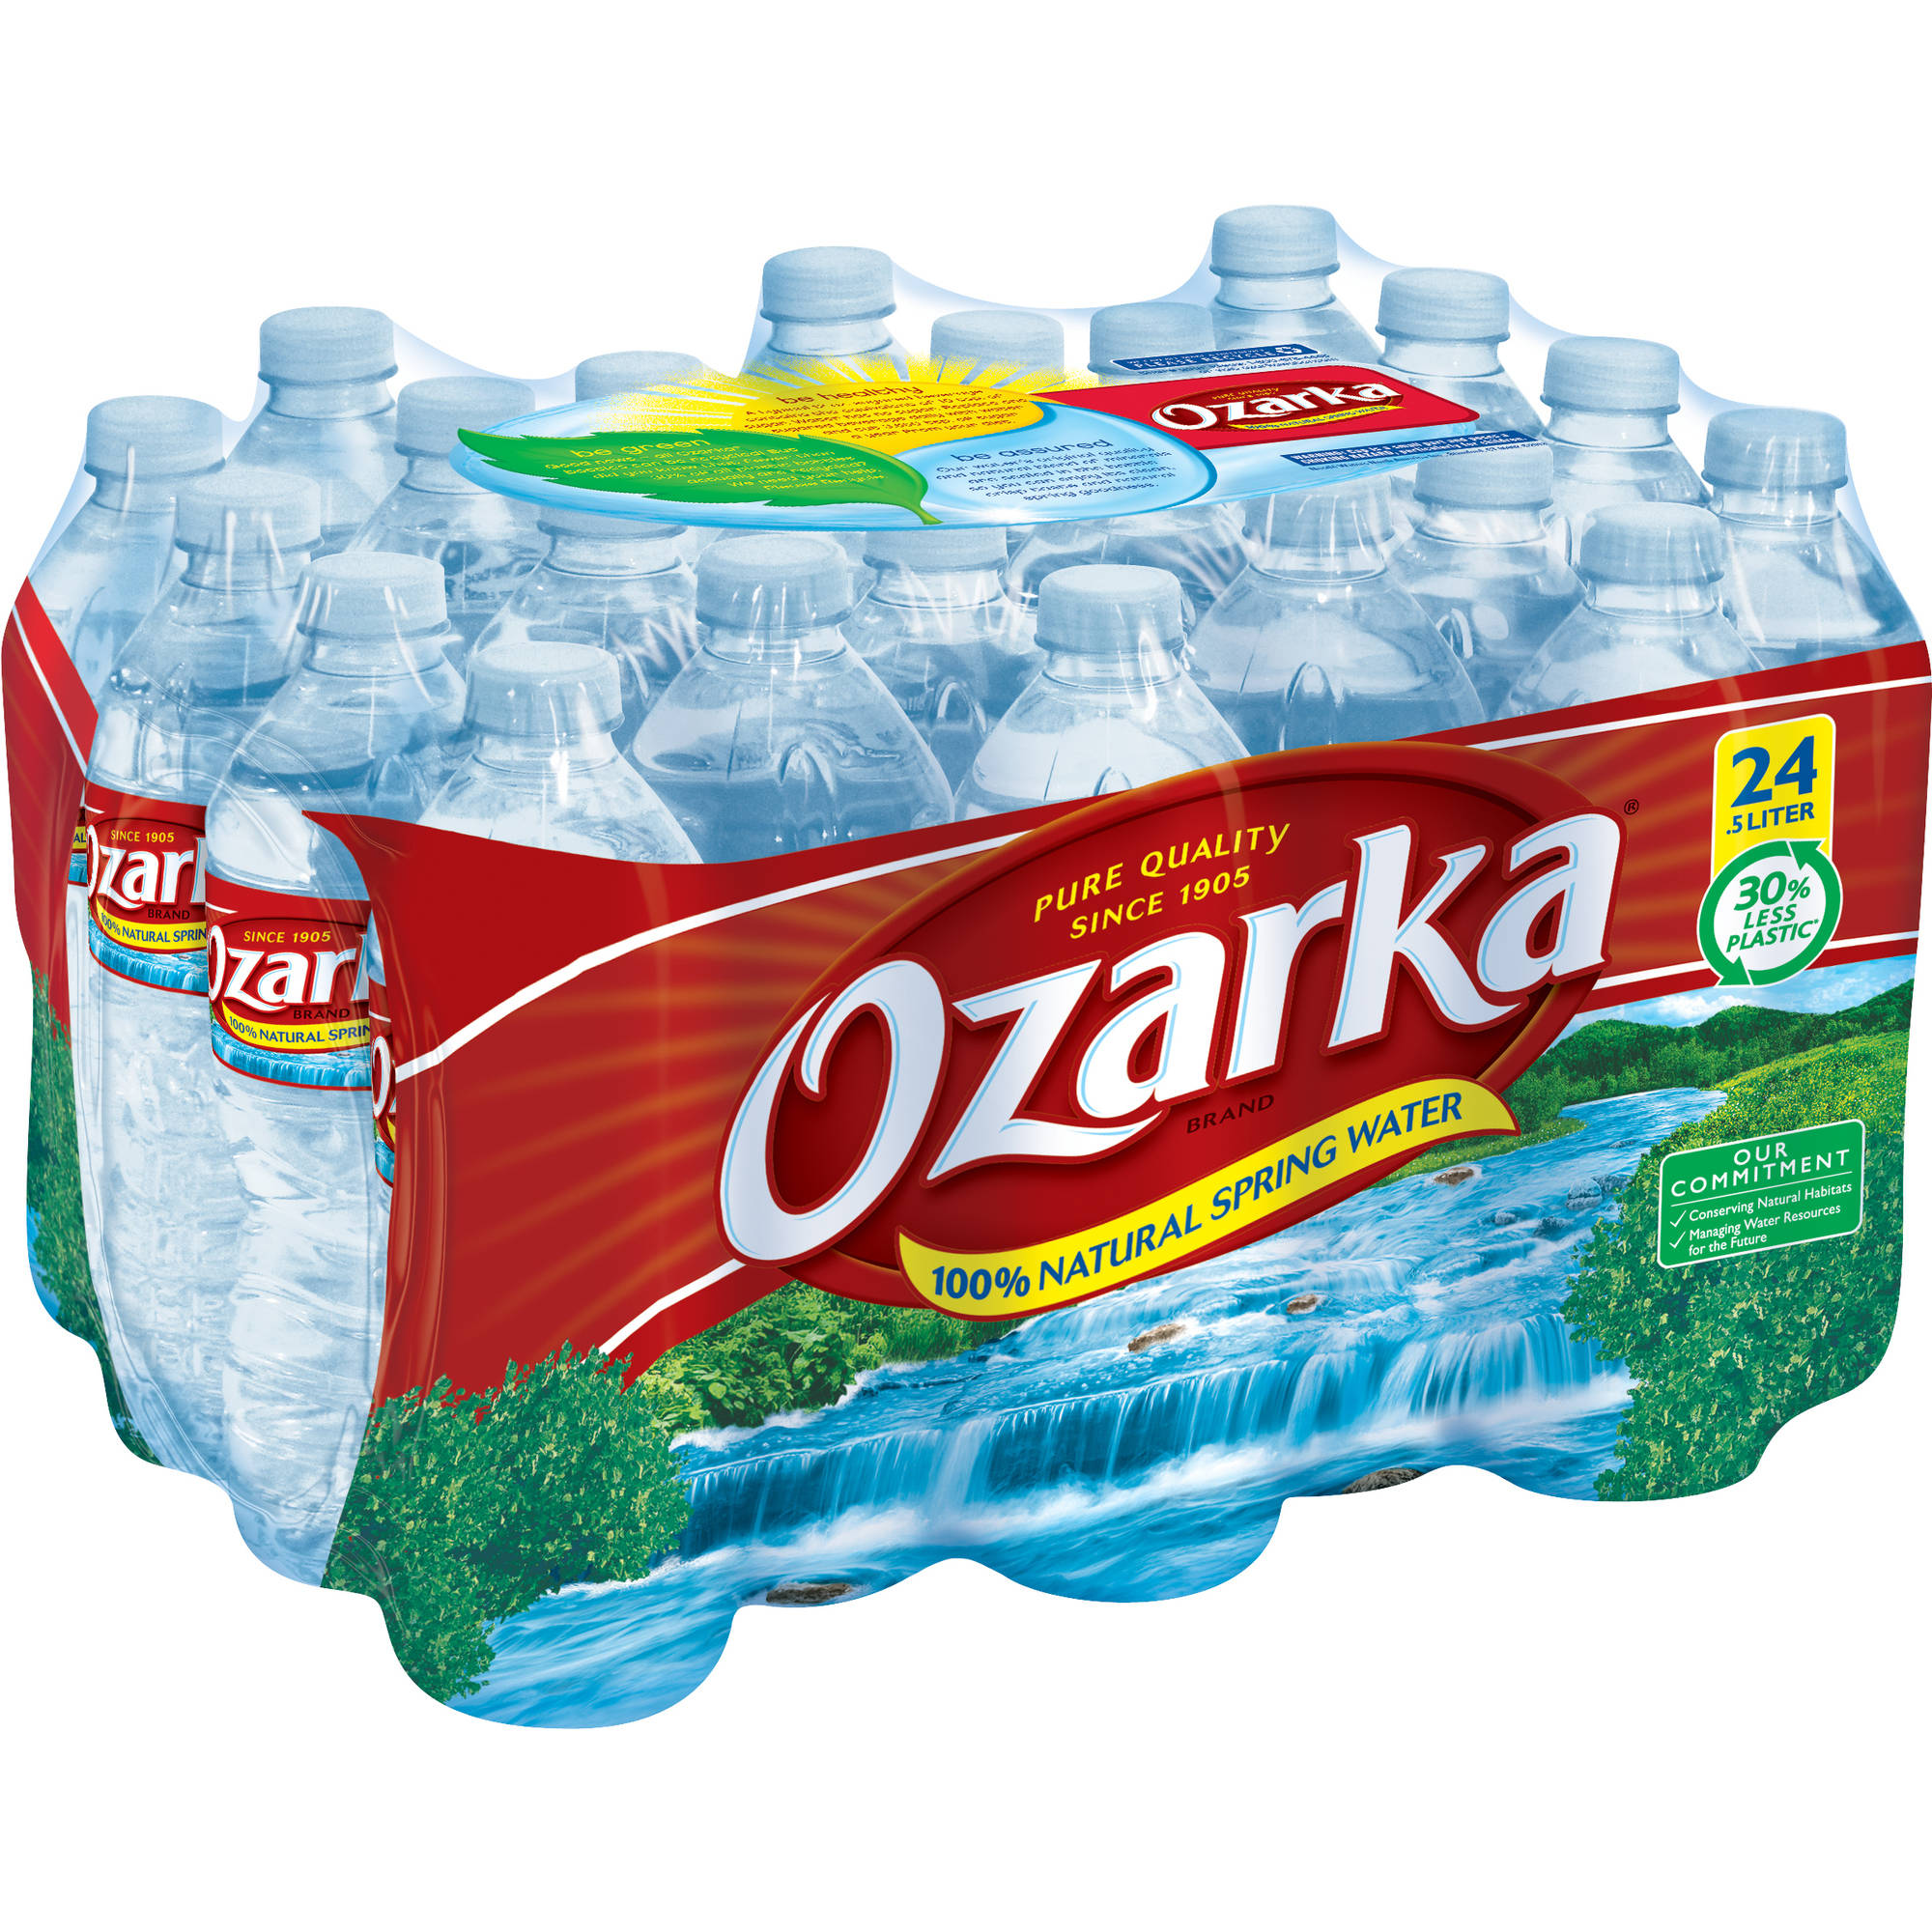 Ozarka 100% Natural Spring Water, 0.5 l, 24 ct